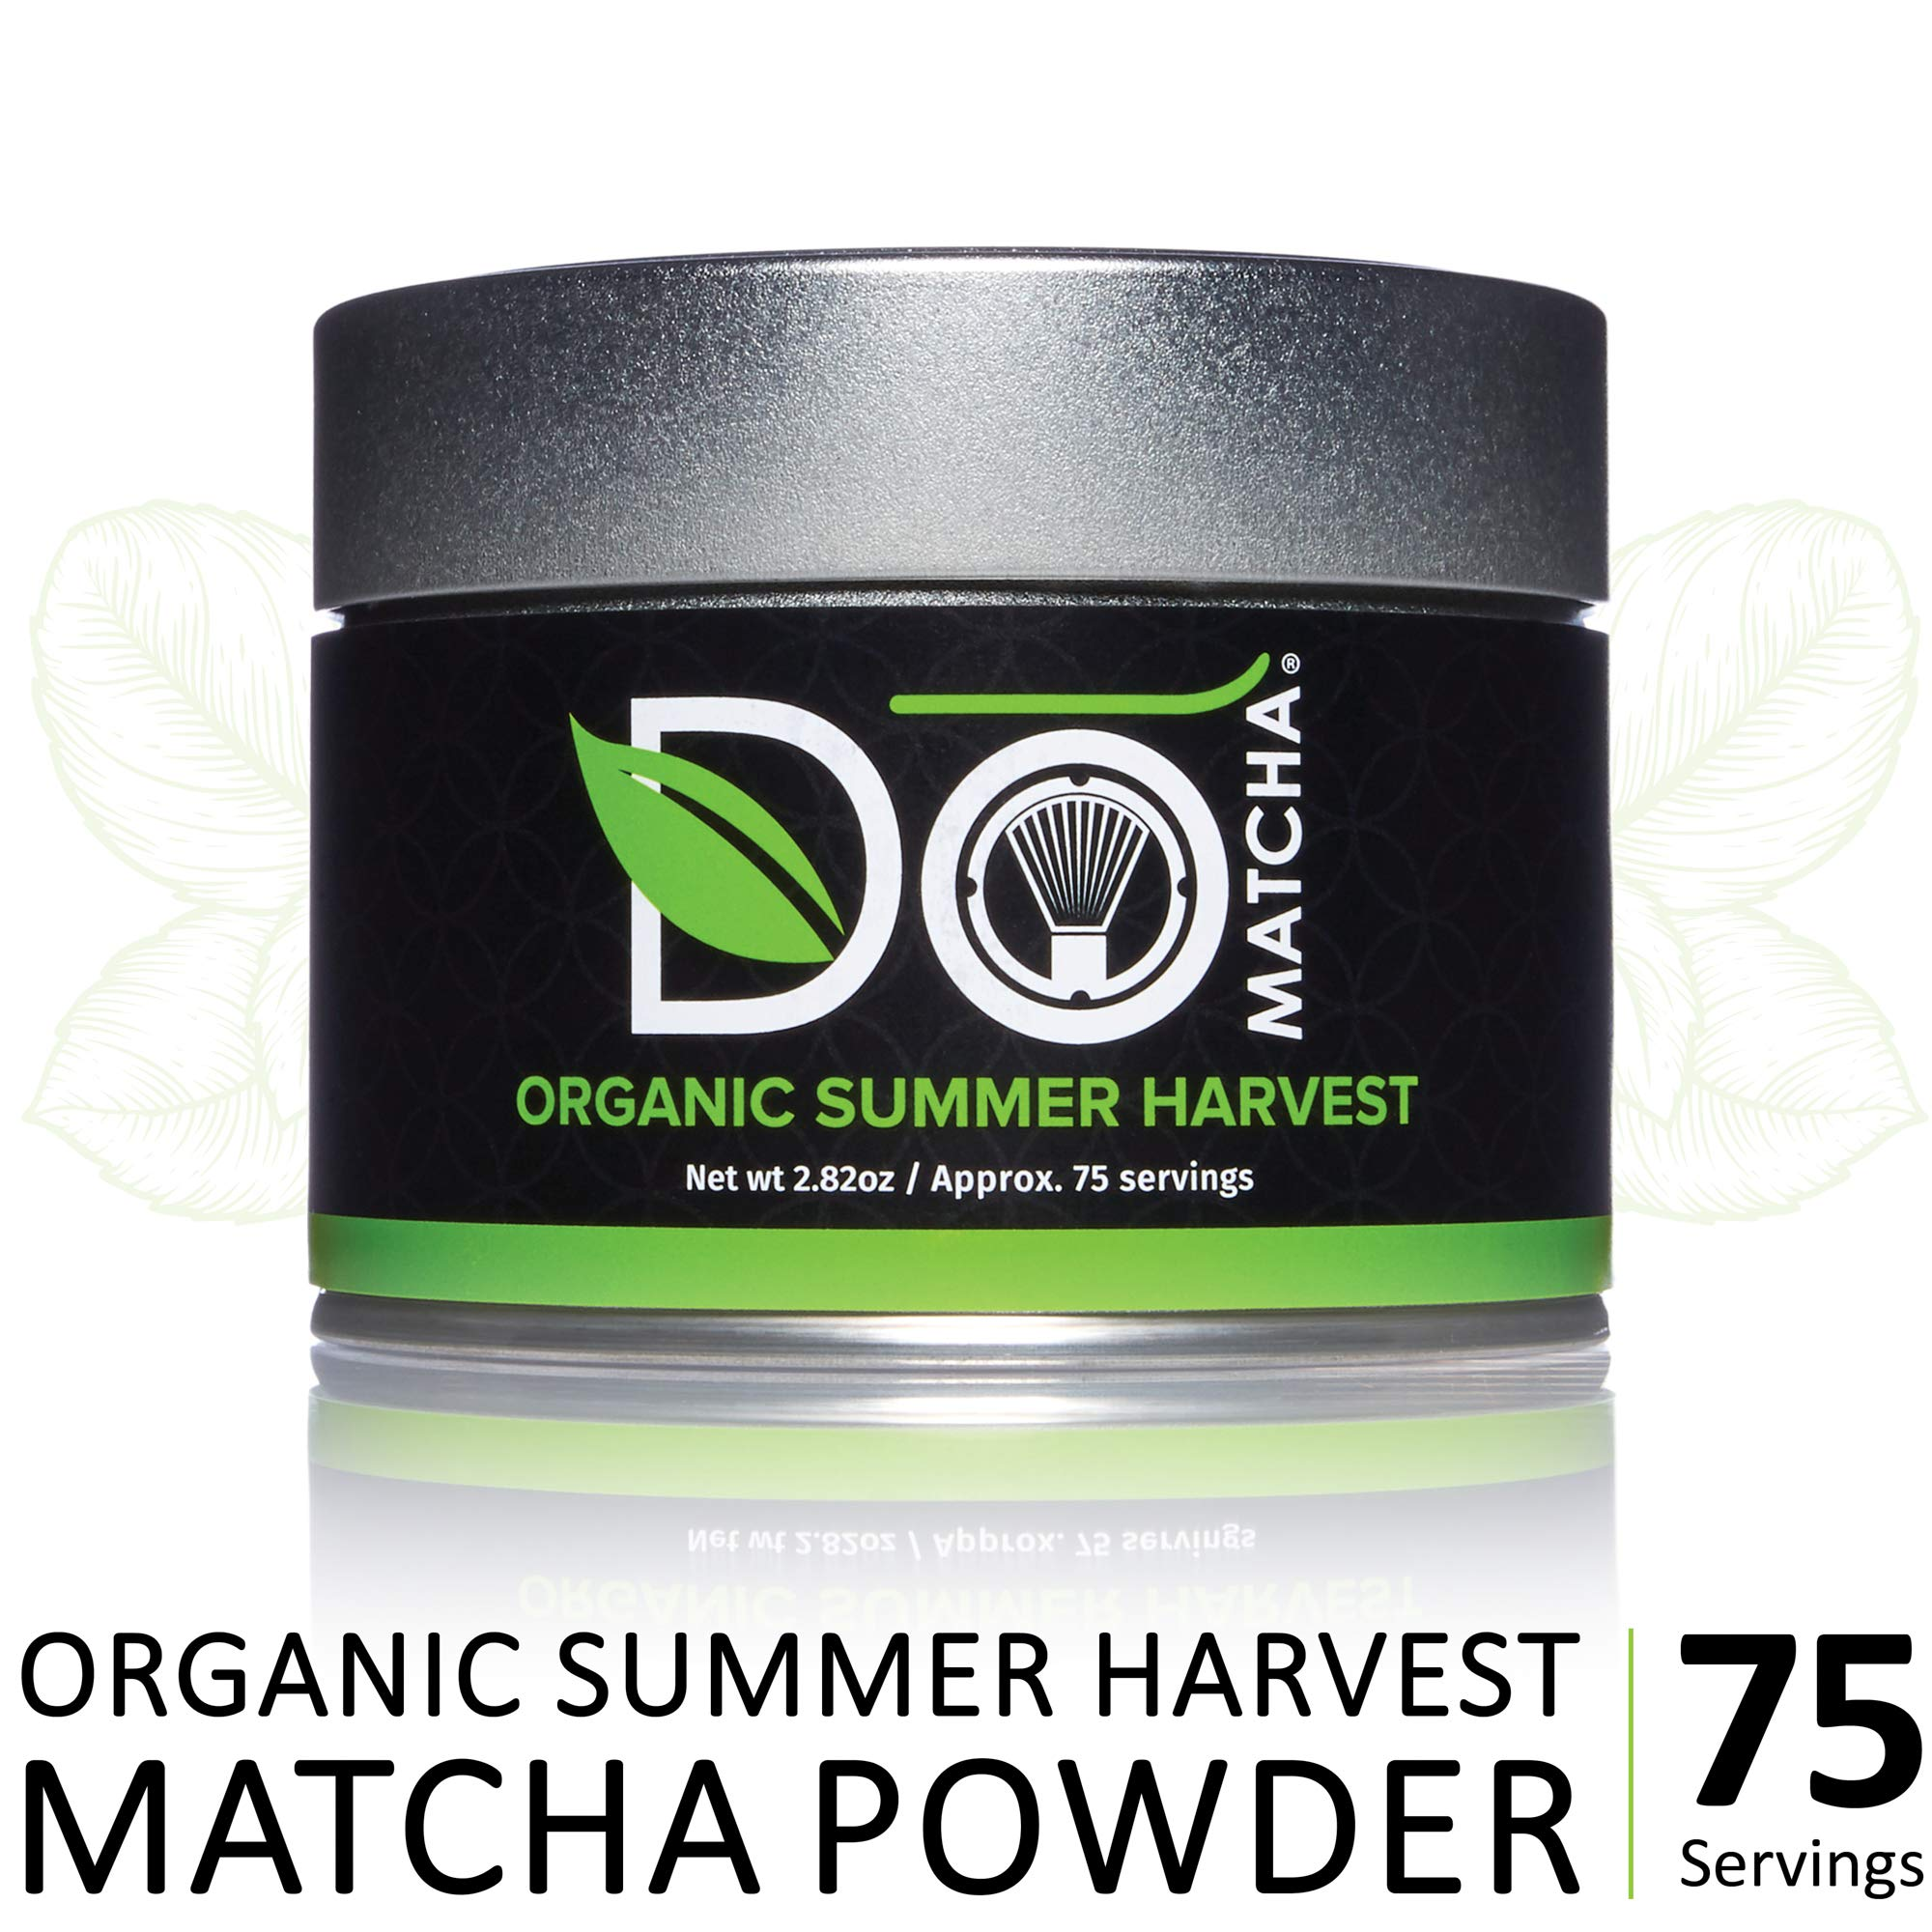 DoMatcha - Organic Summer Harvest Green Tea Matcha Powder, Natural Source of Antioxidants, Caffeine, and L-Theanine, Promotes Focus and Relaxation, 75 Servings (2.82 oz) by DoMatcha